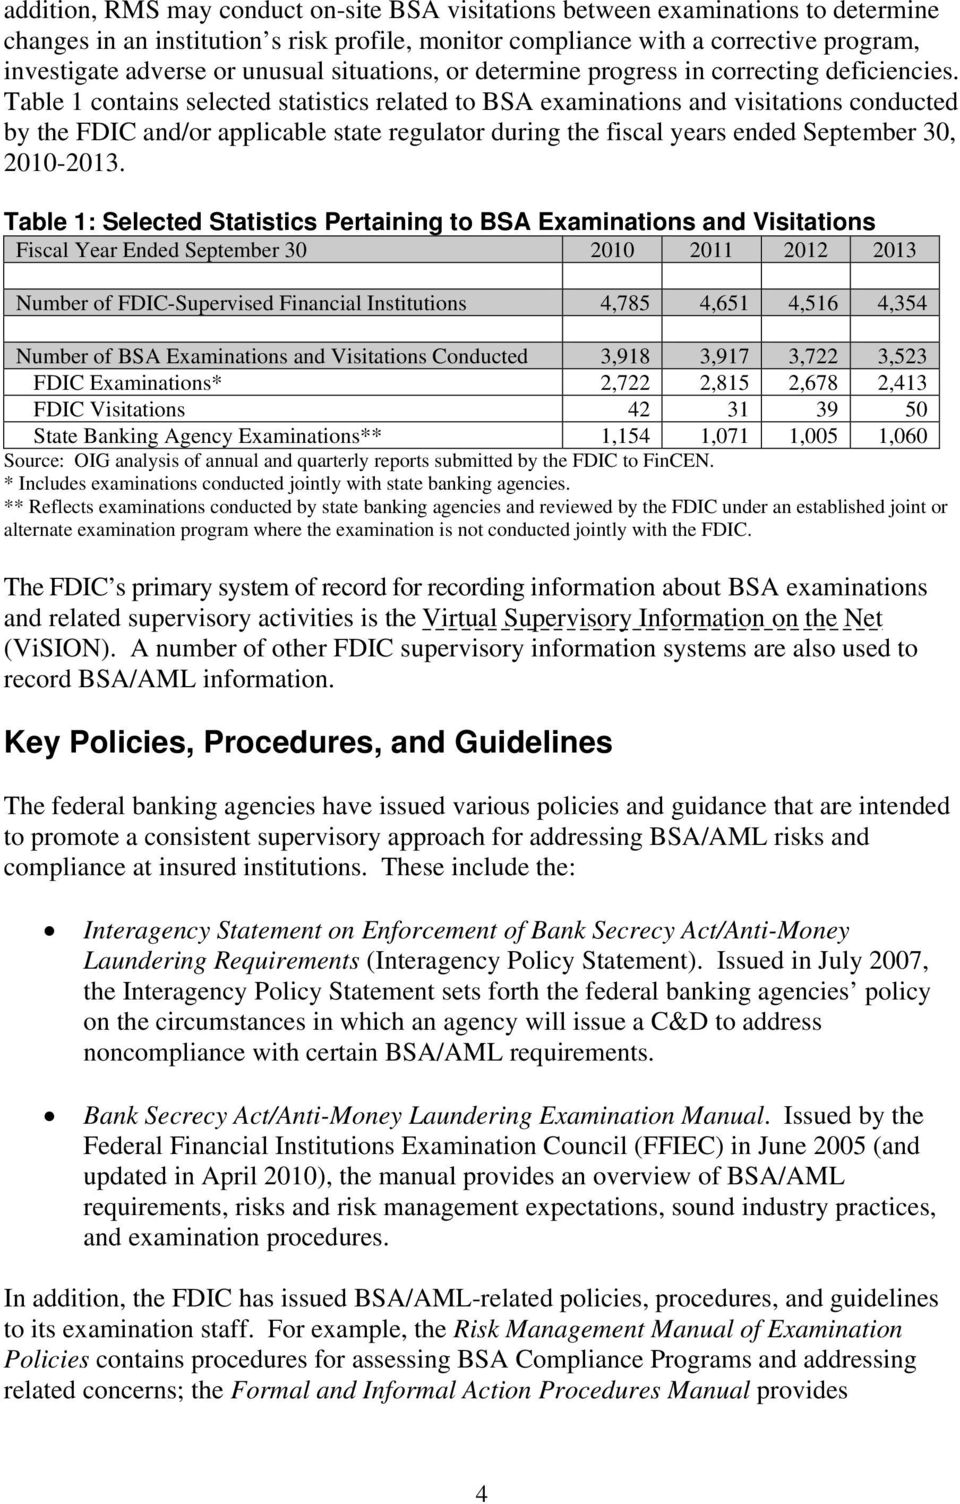 Table 1 contains selected statistics related to BSA examinations and visitations conducted by the FDIC and/or applicable state regulator during the fiscal years ended September 30, 2010-2013.